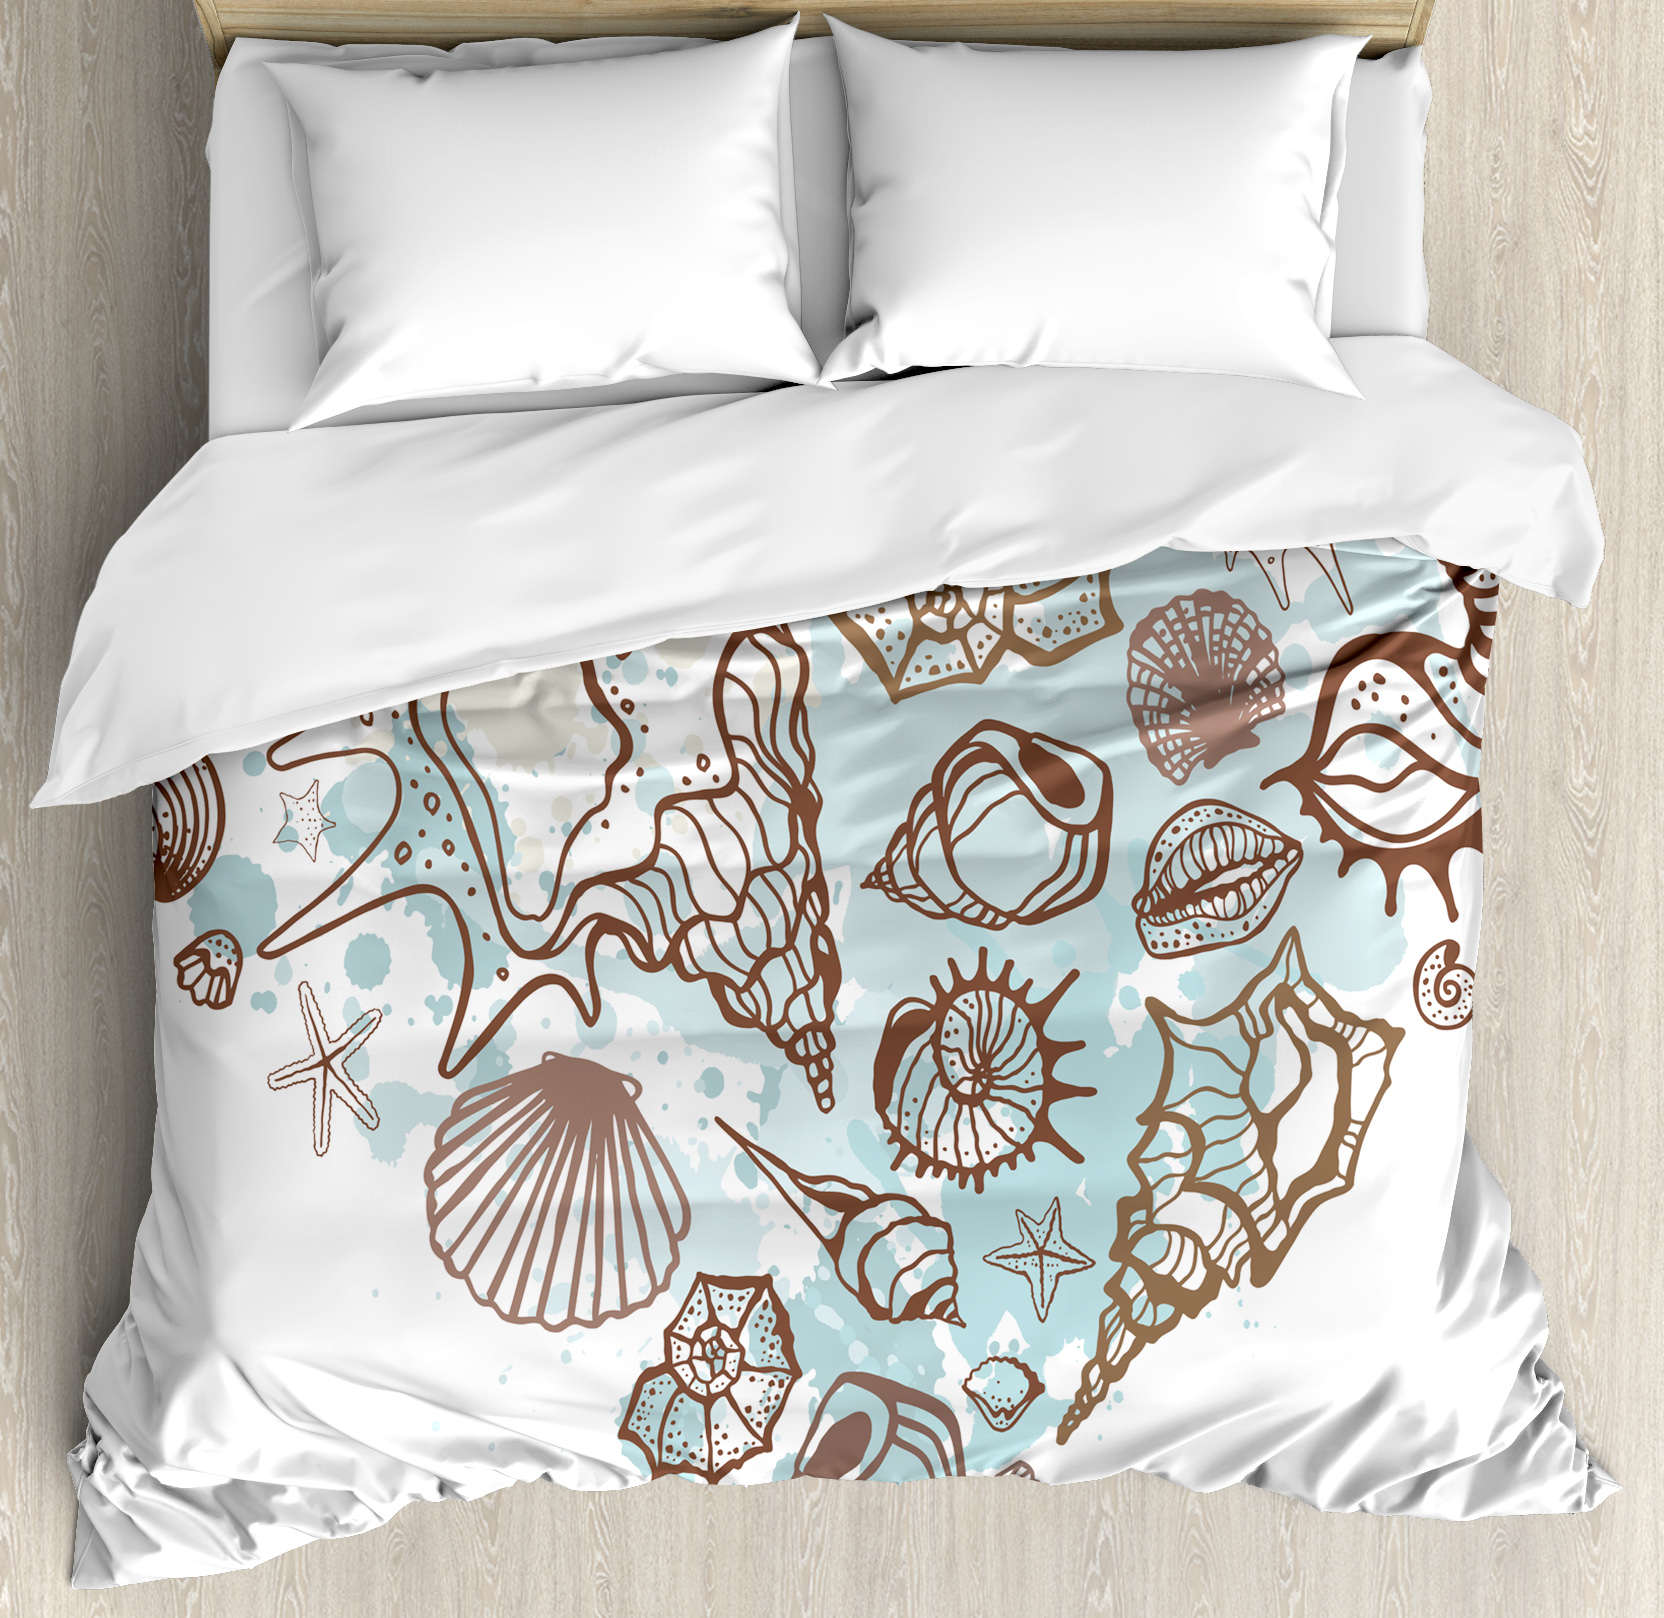 Nautical Queen Size Duvet Cover Set, Hand Drawn Seashells Scallop Starfish Whelk Ocean Underwater Life Theme, Decorative 3 Piece Bedding Set with 2 Pillow Shams, Brown Warm Taupe Teal, by Ambesonne